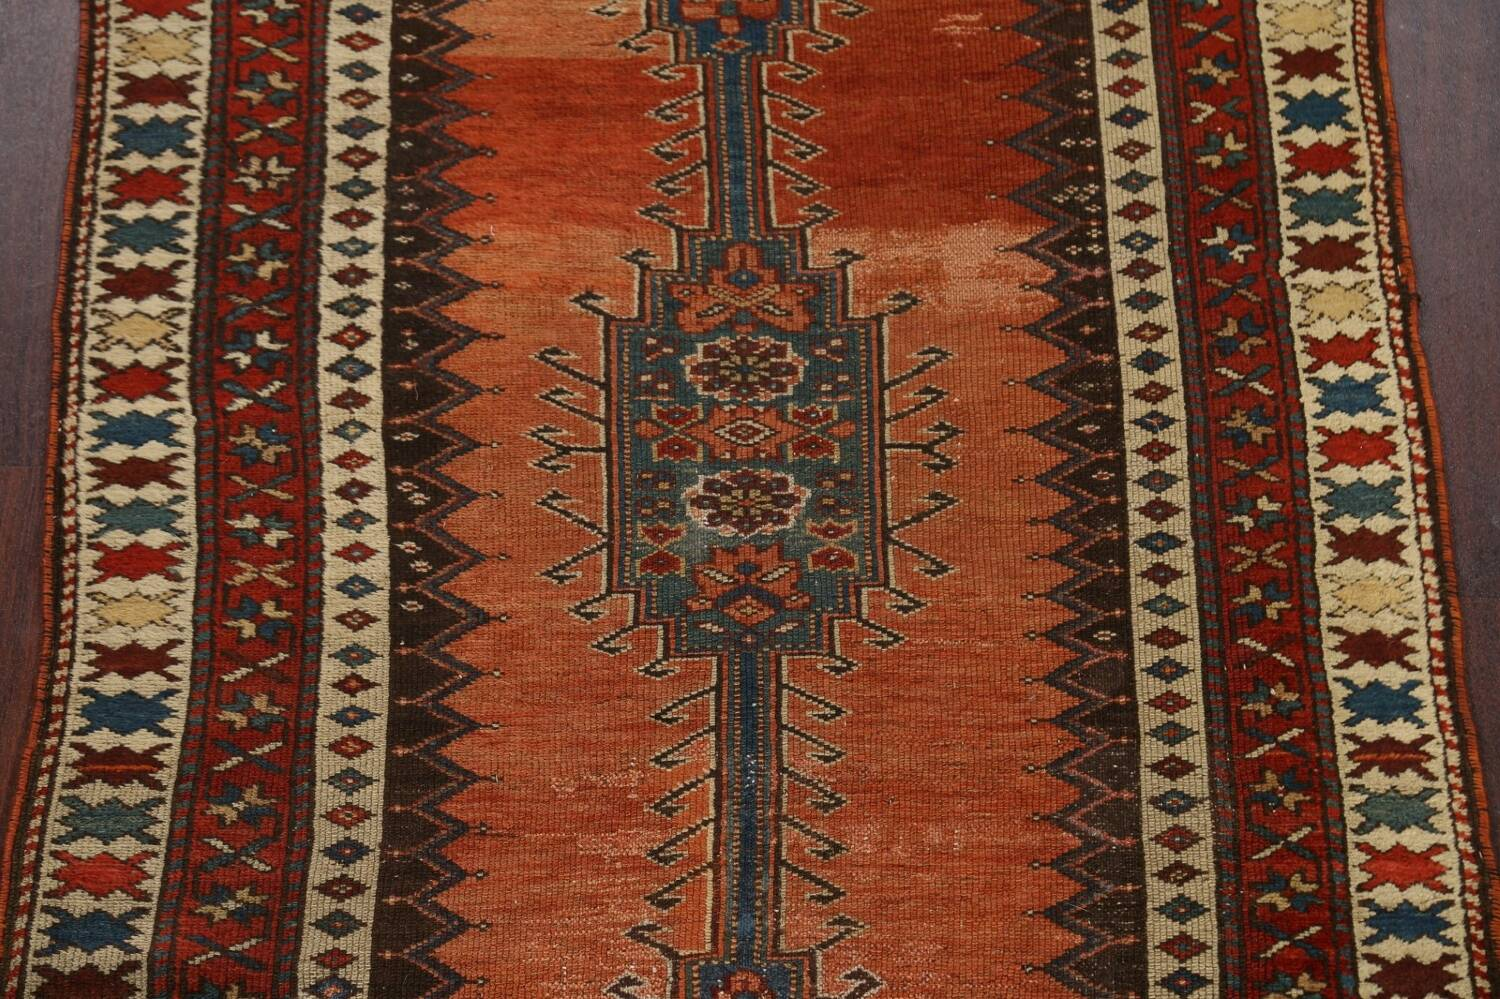 Pre-1900 Antique Vegetable Dye Malayer Persian Runner Rug 4x10 image 4